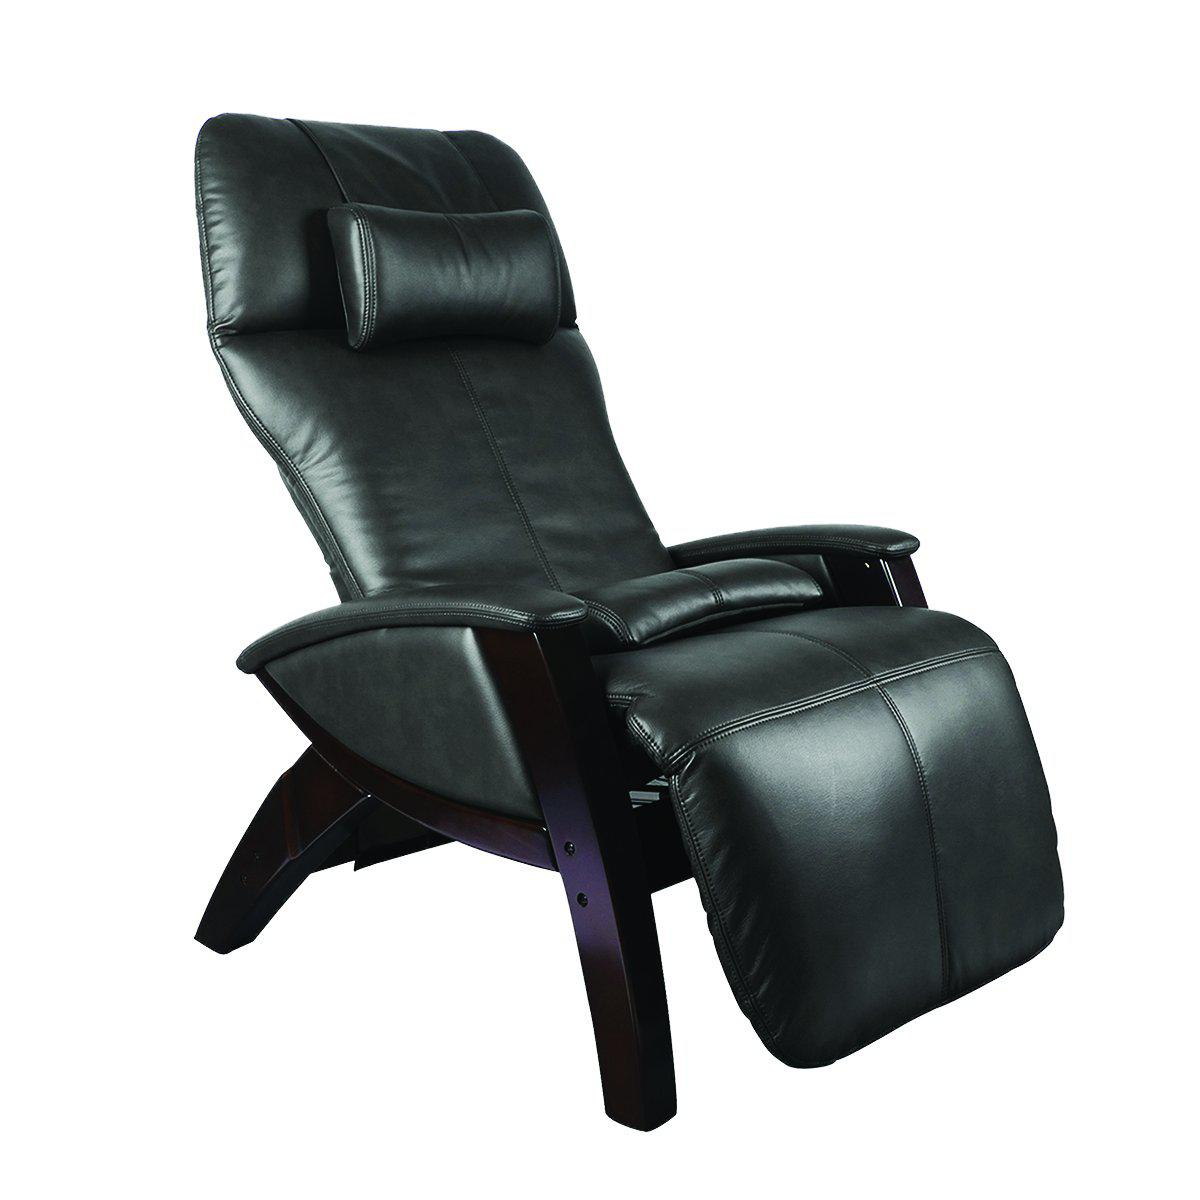 Ground Therapy Zero Gravity Recliner (4385736556657)